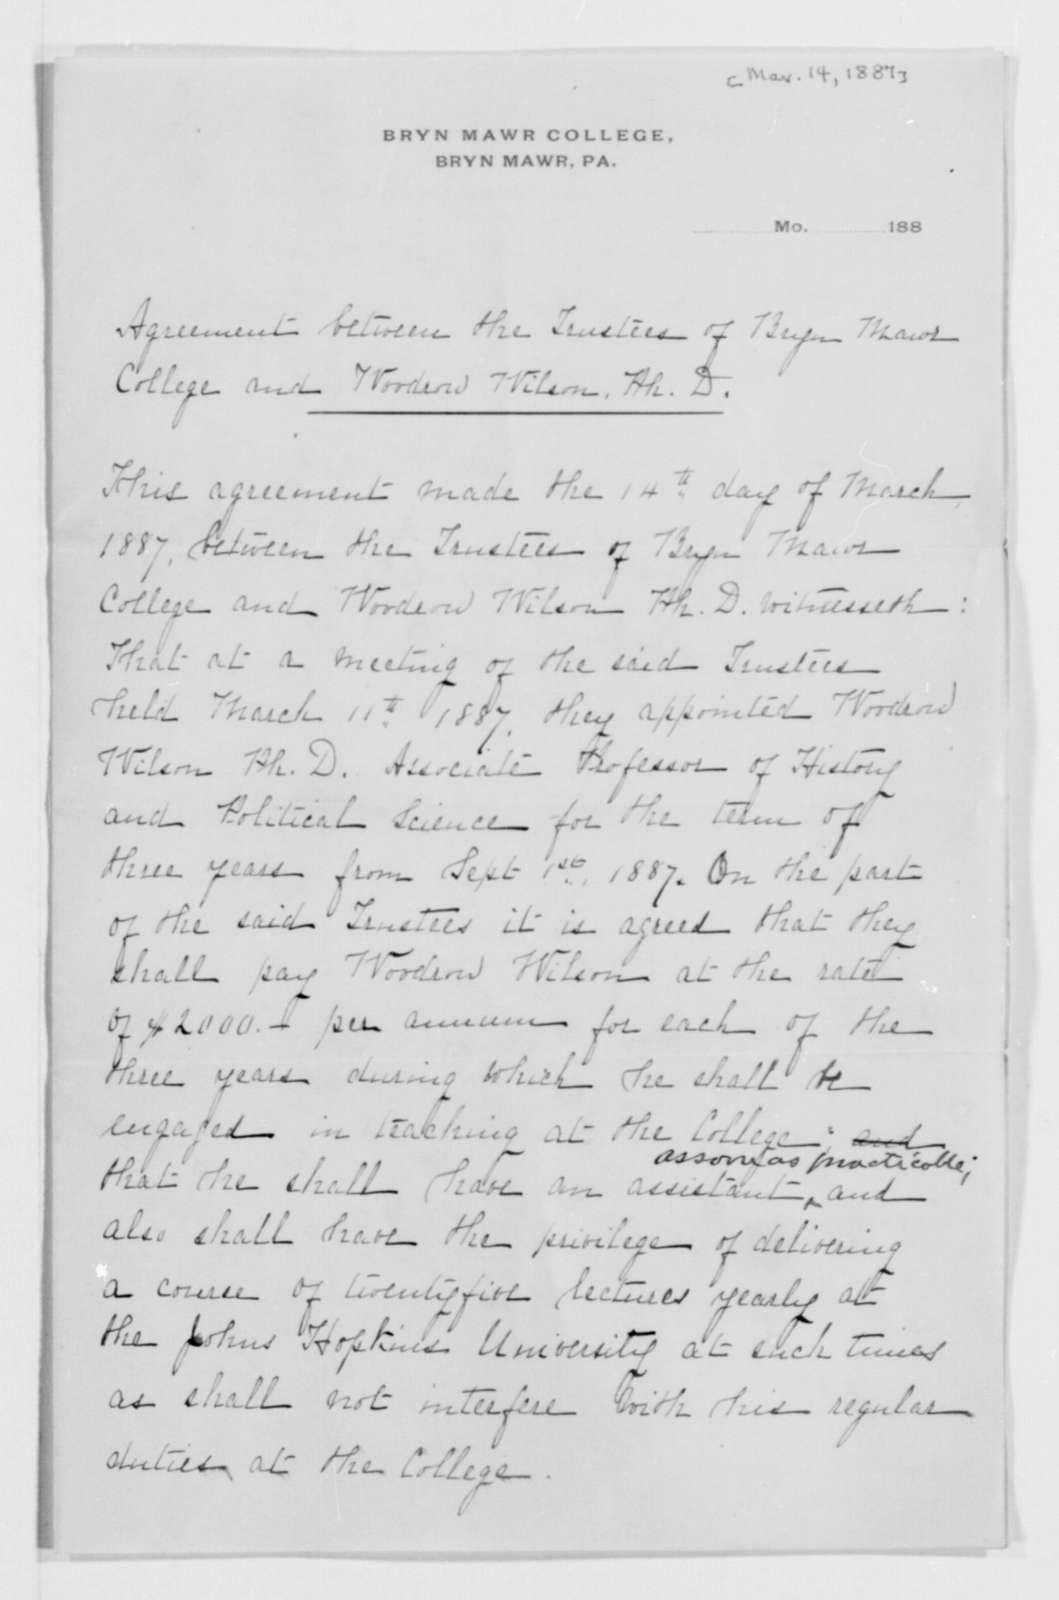 Woodrow Wilson Papers: Series 2: Family and General Correspondence, 1786-1924; 1887, Mar. 14-1889, Mar. 22